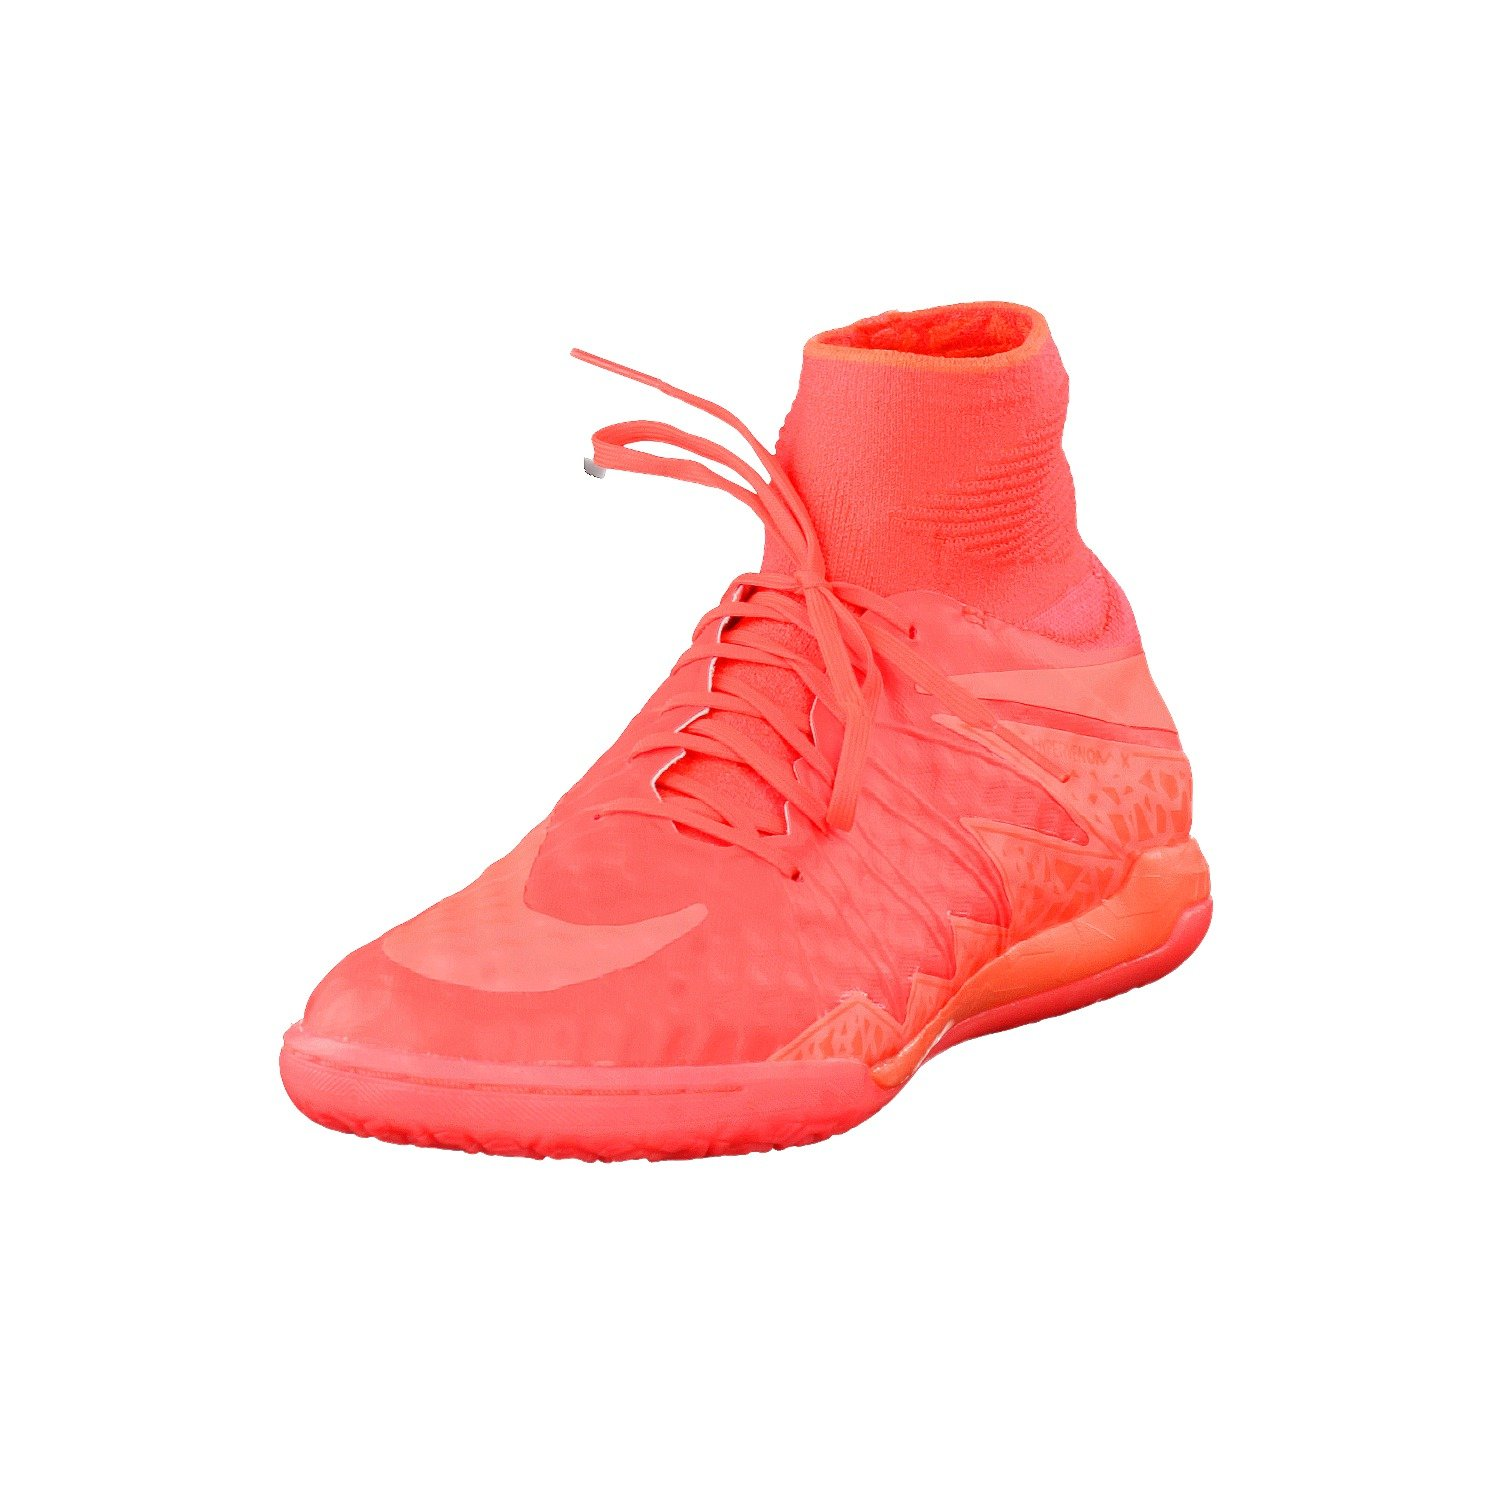 official photos 7ea21 598a3 ... Man Woman Nike Hypervenomx Proximo IC 747486 Mens Football Boots 747486  IC Soccer Cleats Strong heat ...